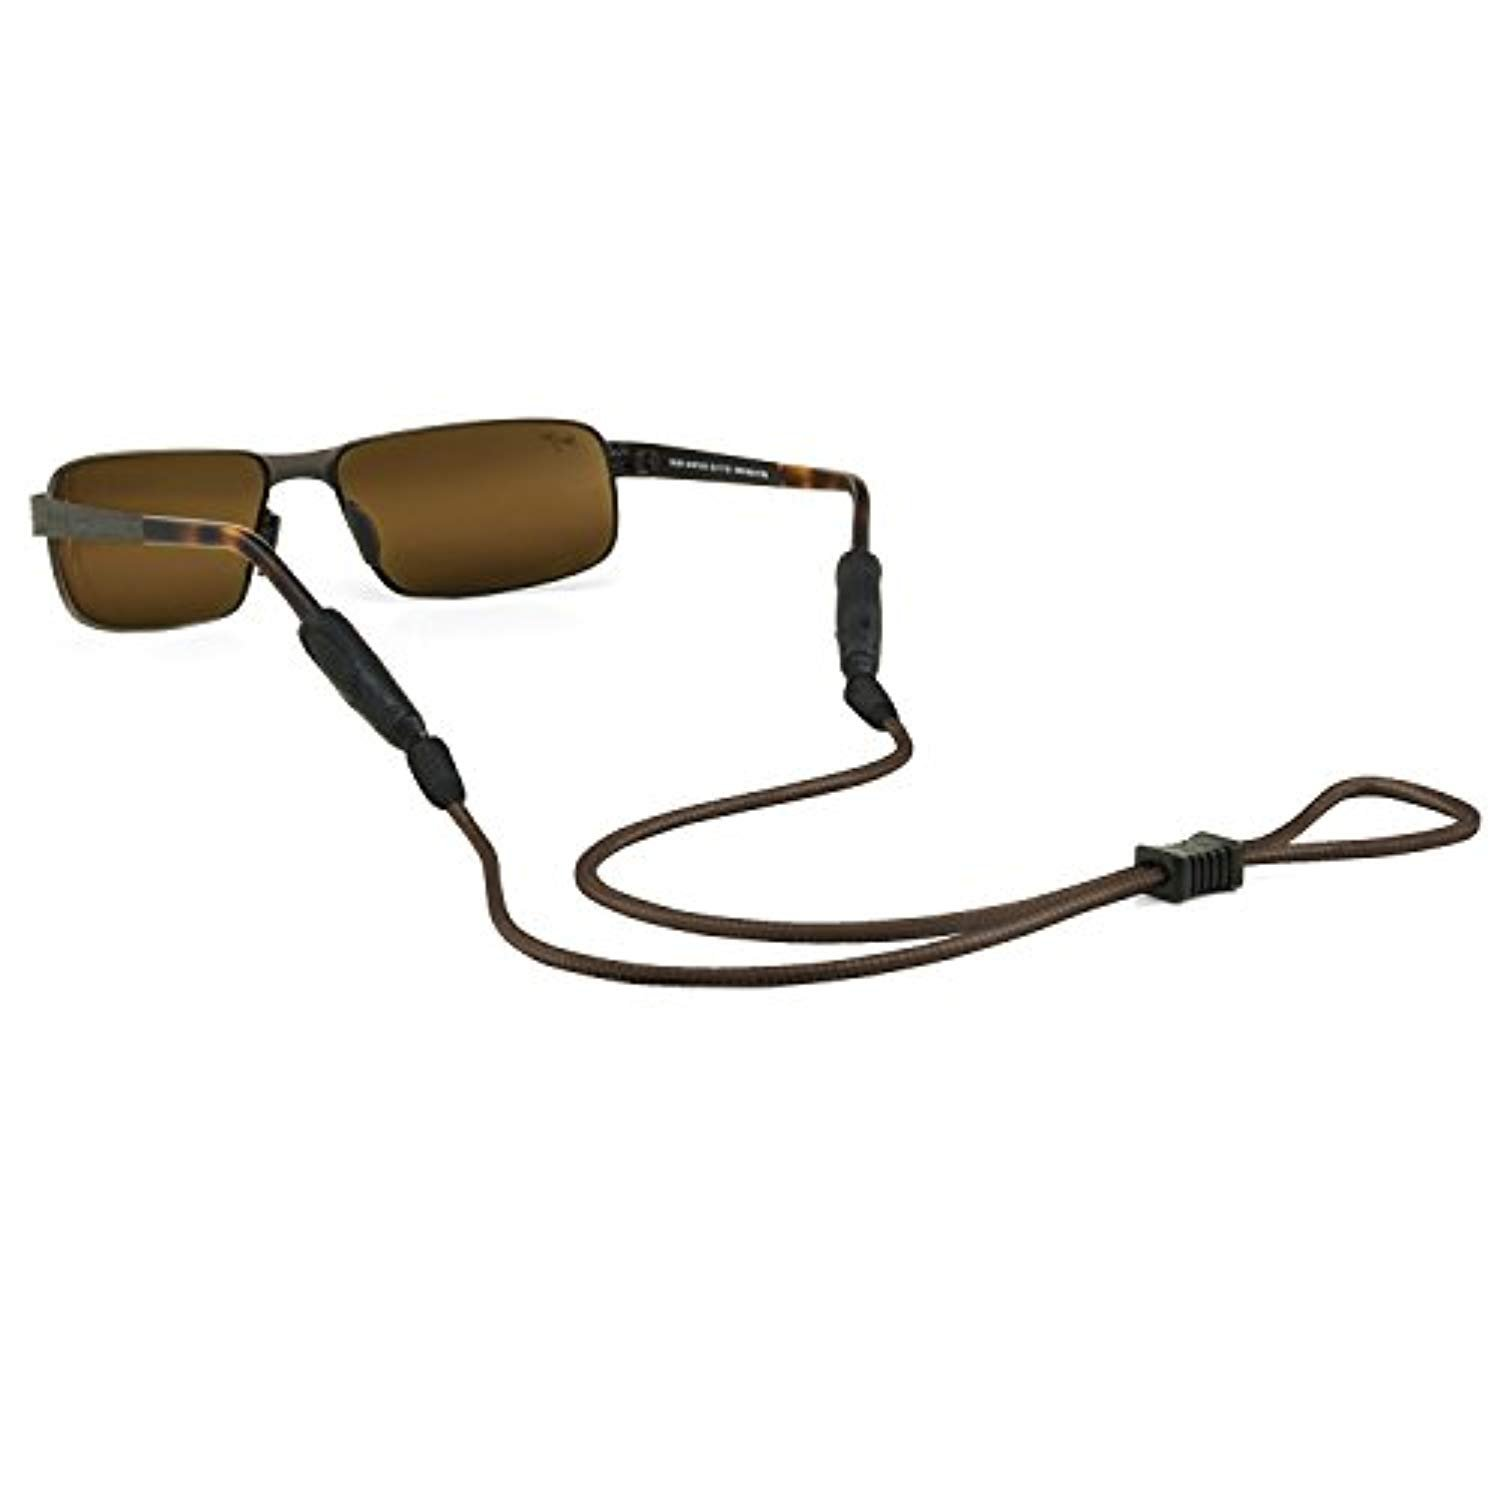 Croakies Terra System Adjustable, Terra Ends Brown XXL 2-Pack by Croakies, USA